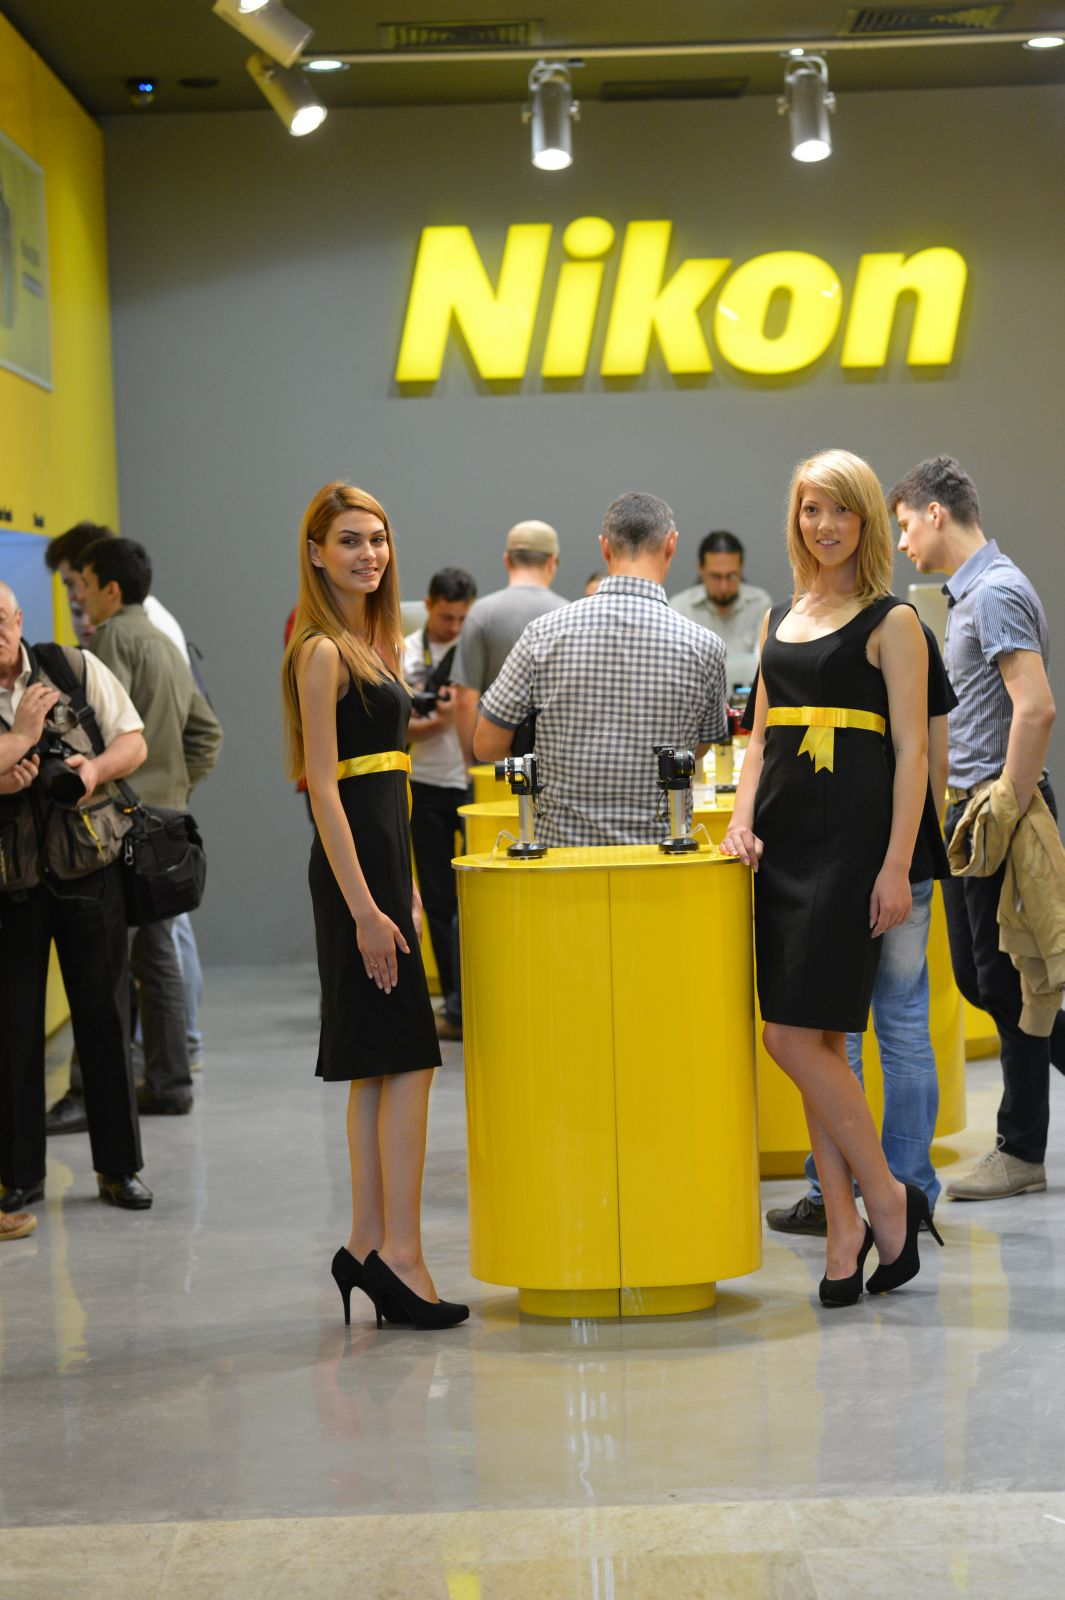 nikon yellow store la iasi. Black Bedroom Furniture Sets. Home Design Ideas